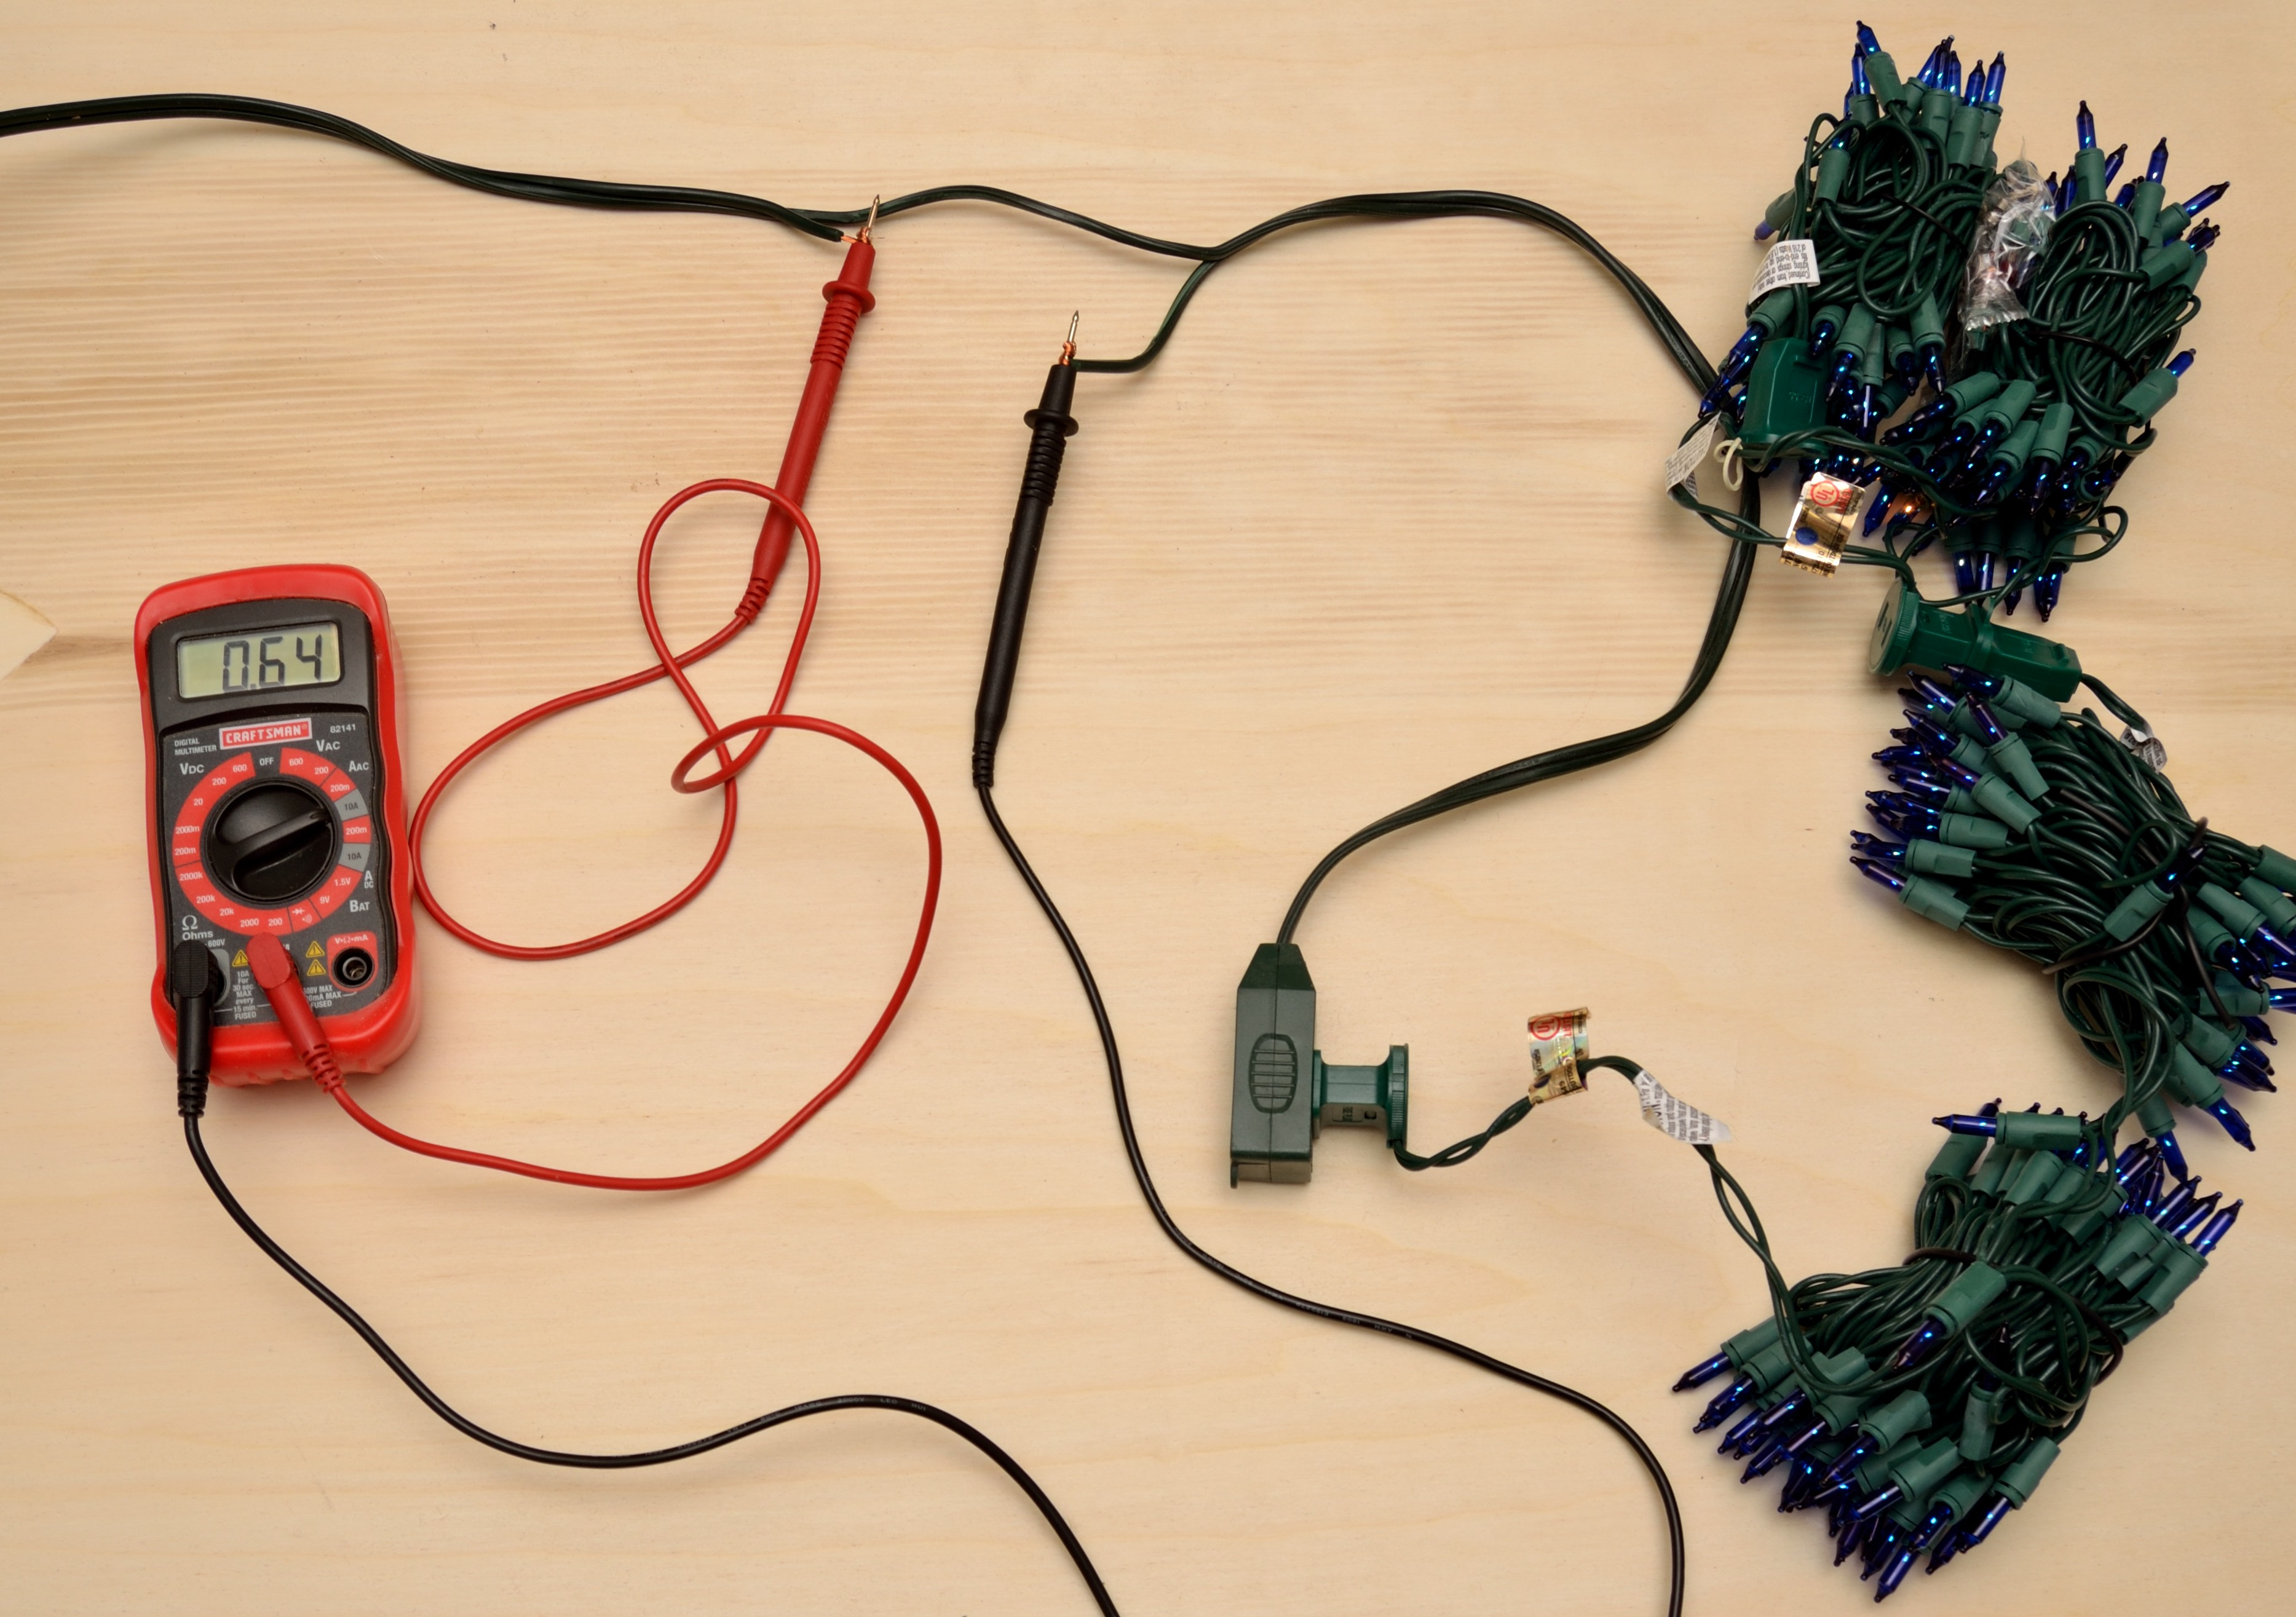 Diy Raspberry Pi Christmas Tree Light Show Diygadgets Wiring Diagrams Test Rather Than Hook Up Full Strings Of Lights I Hooked Cheap 1 Night To Each Extension Cord And Develop The Animations Before